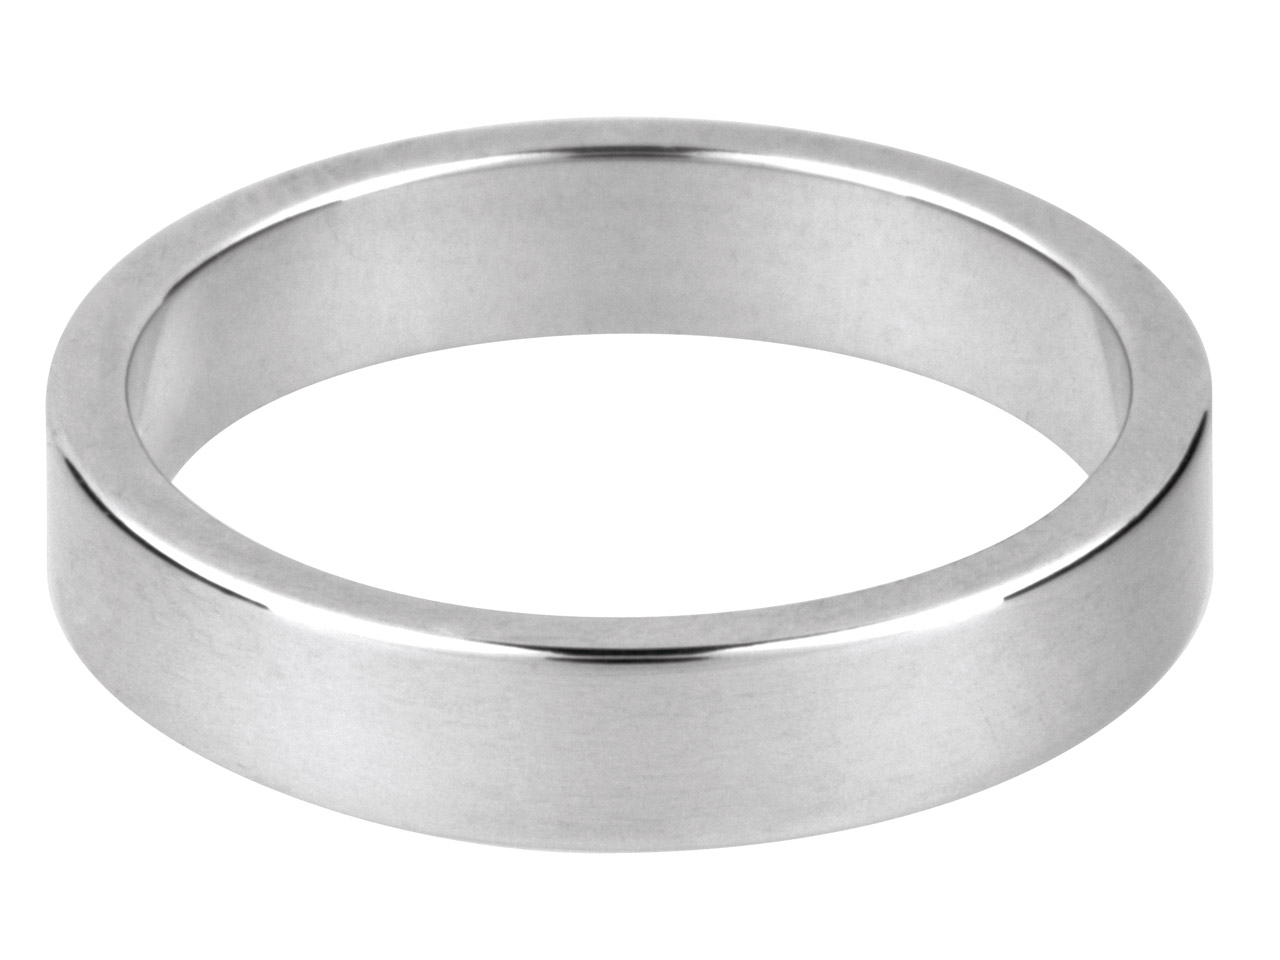 9ct White Flat Wedding Ring 2.0mm  J 1.7gms Medium Weight Hallmarked  Wall Thickness 1.20mm